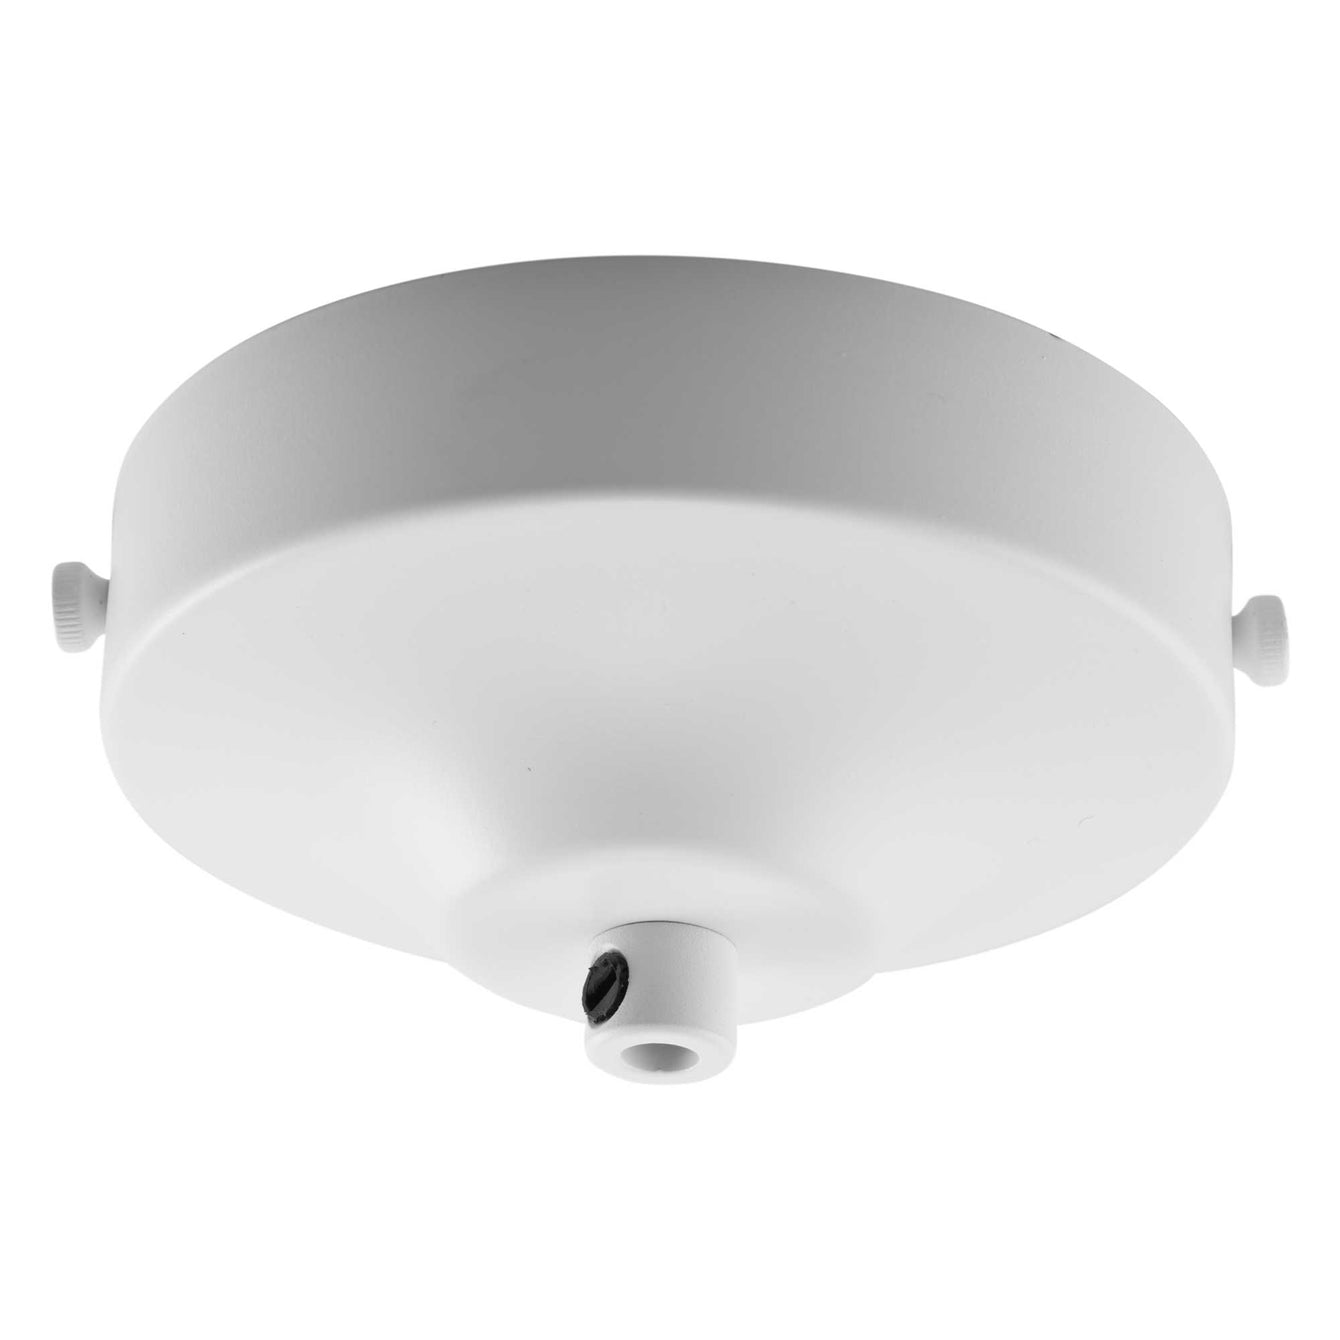 ElekTek 100mm Diameter Convex Ceiling Rose with Strap Bracket and Cord Grip Metallic Finishes Powder Coated Colours - Buy It Better Antique White